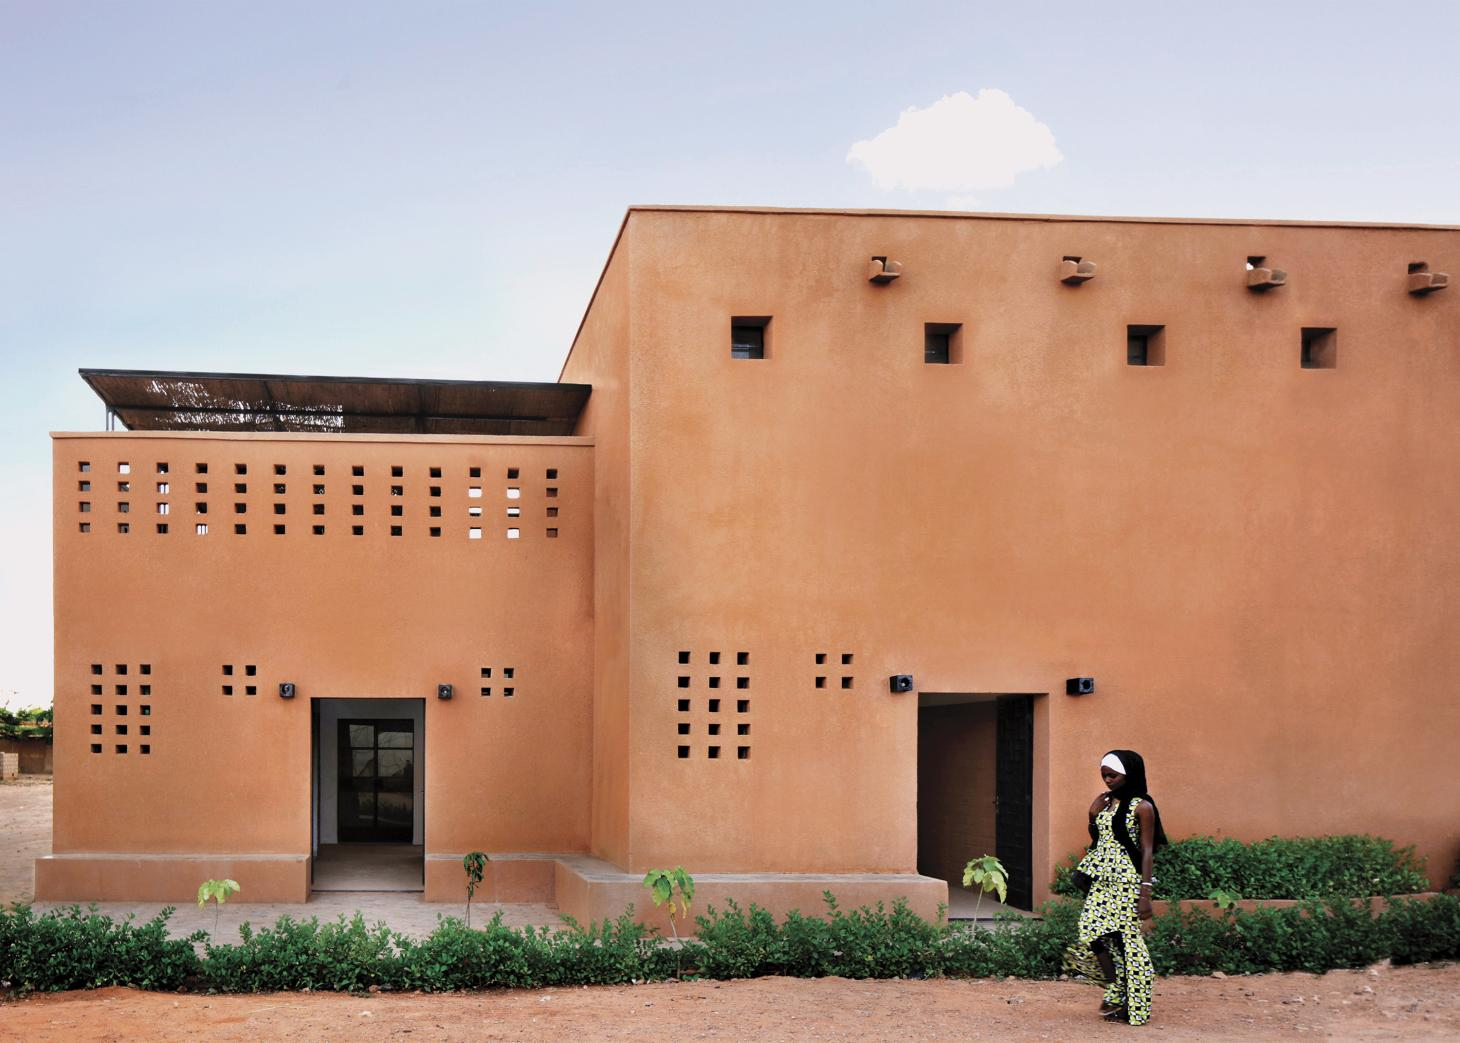 Niamey 2000 residential project's east entry